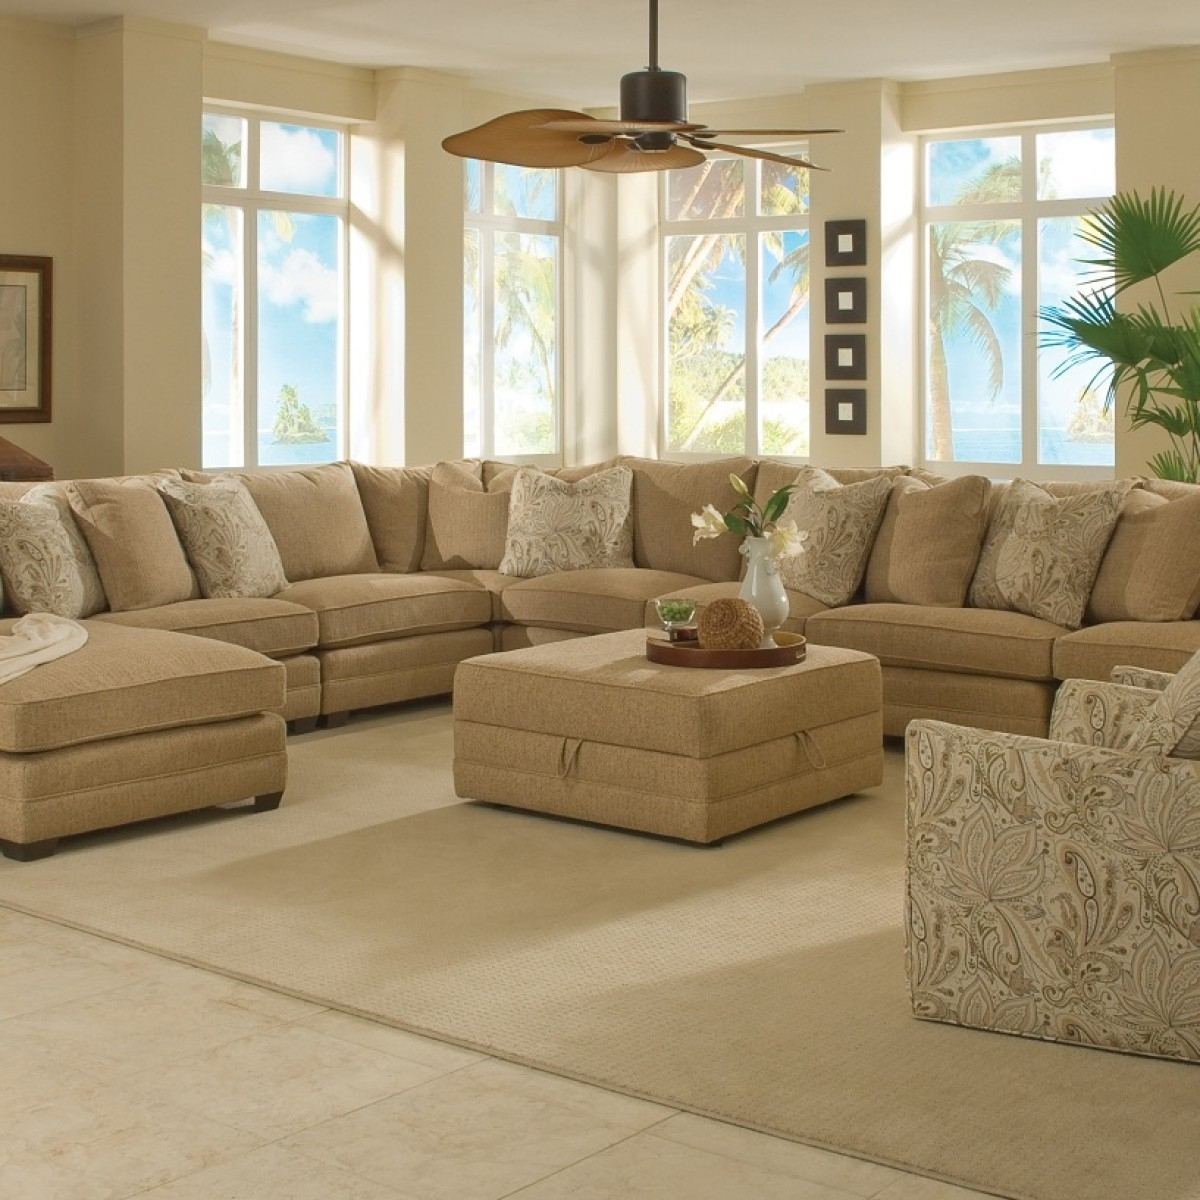 Factors To Consider Before Buying An Extra Large Sectional Sofa Within Latest Austin Sectional Sofas (View 4 of 20)